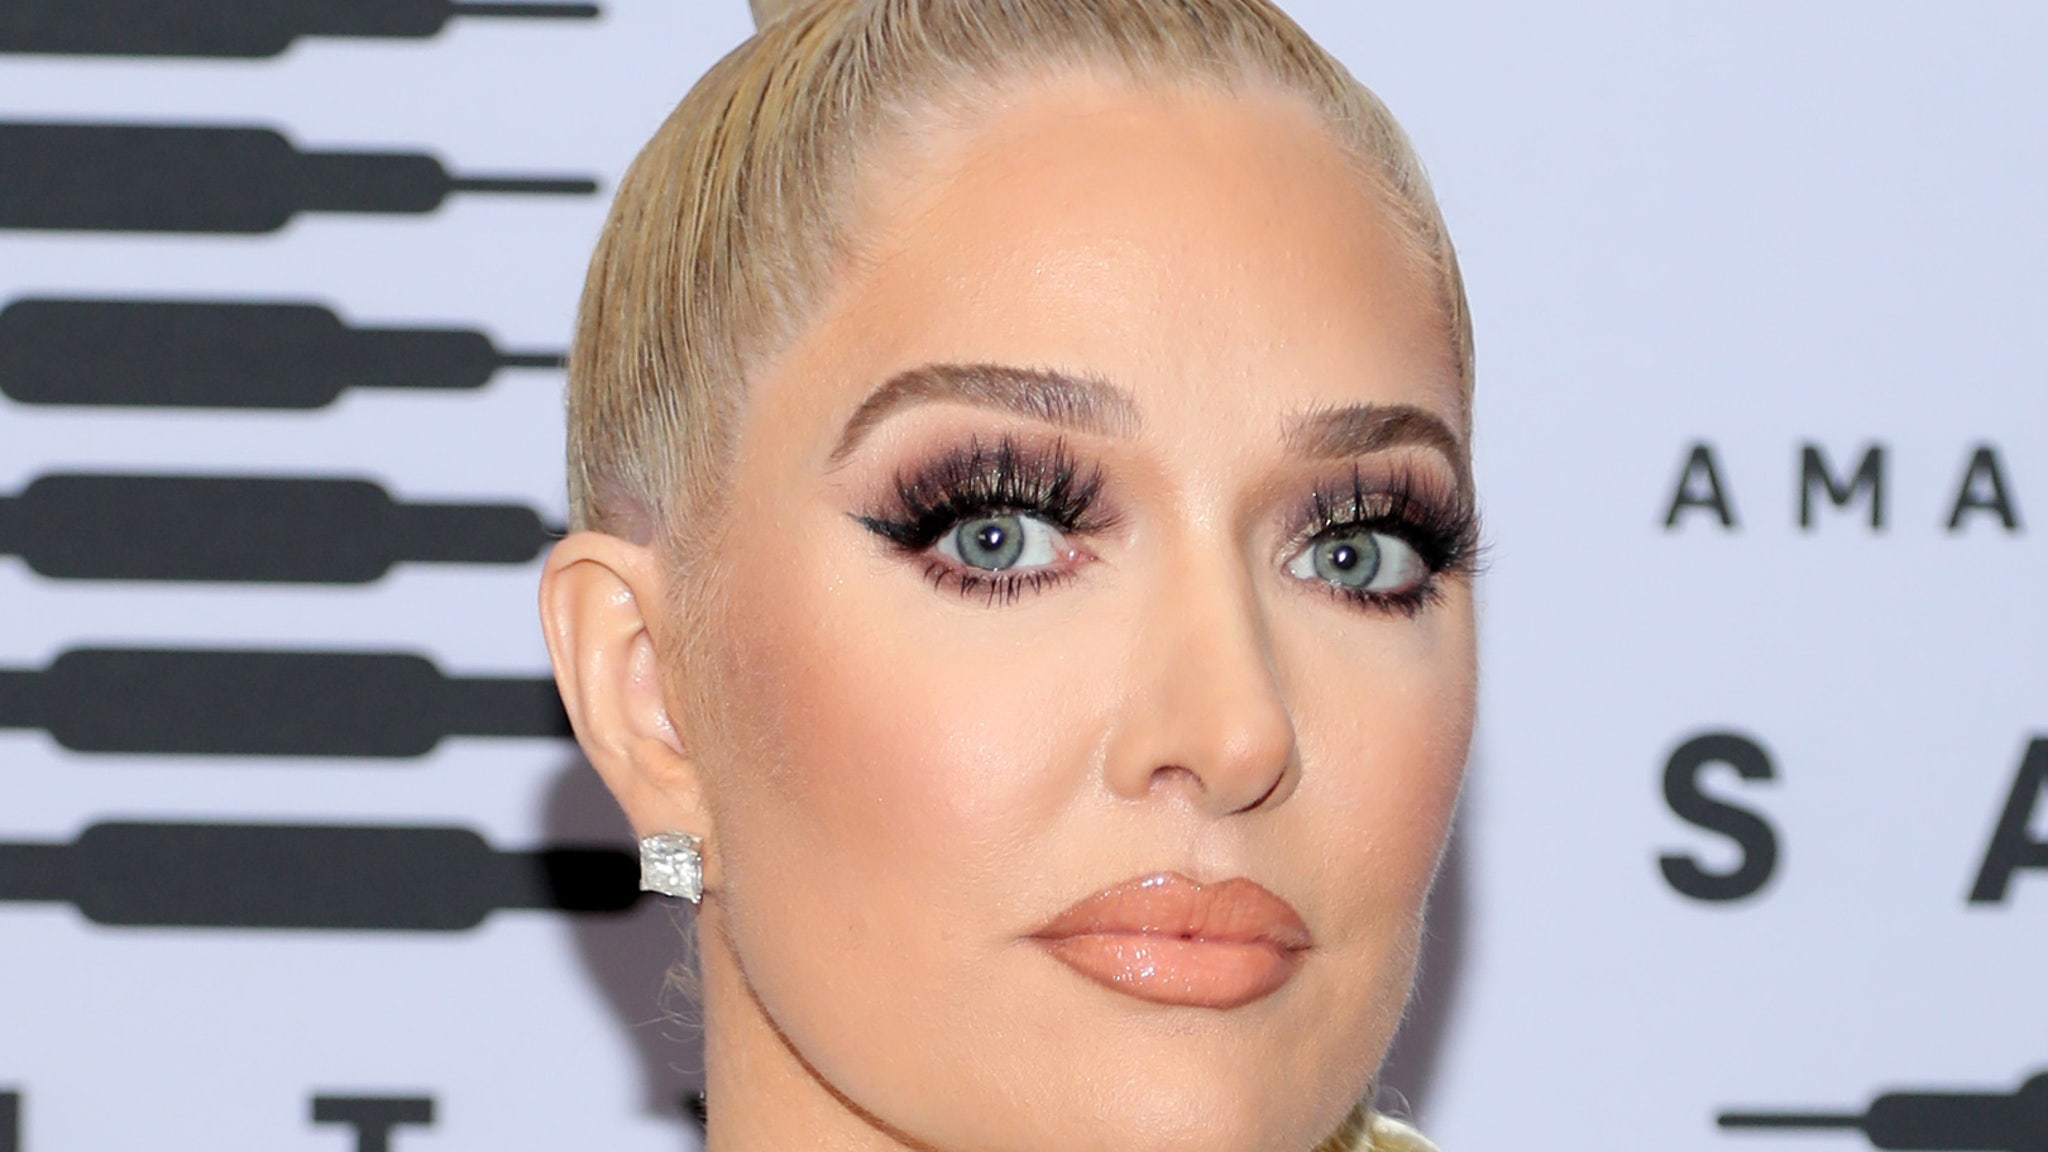 Erika Jayne Says She Doesn't Give A Fuck If Her RHOBH Co-Stars Believe Her Side Of Legal Drama